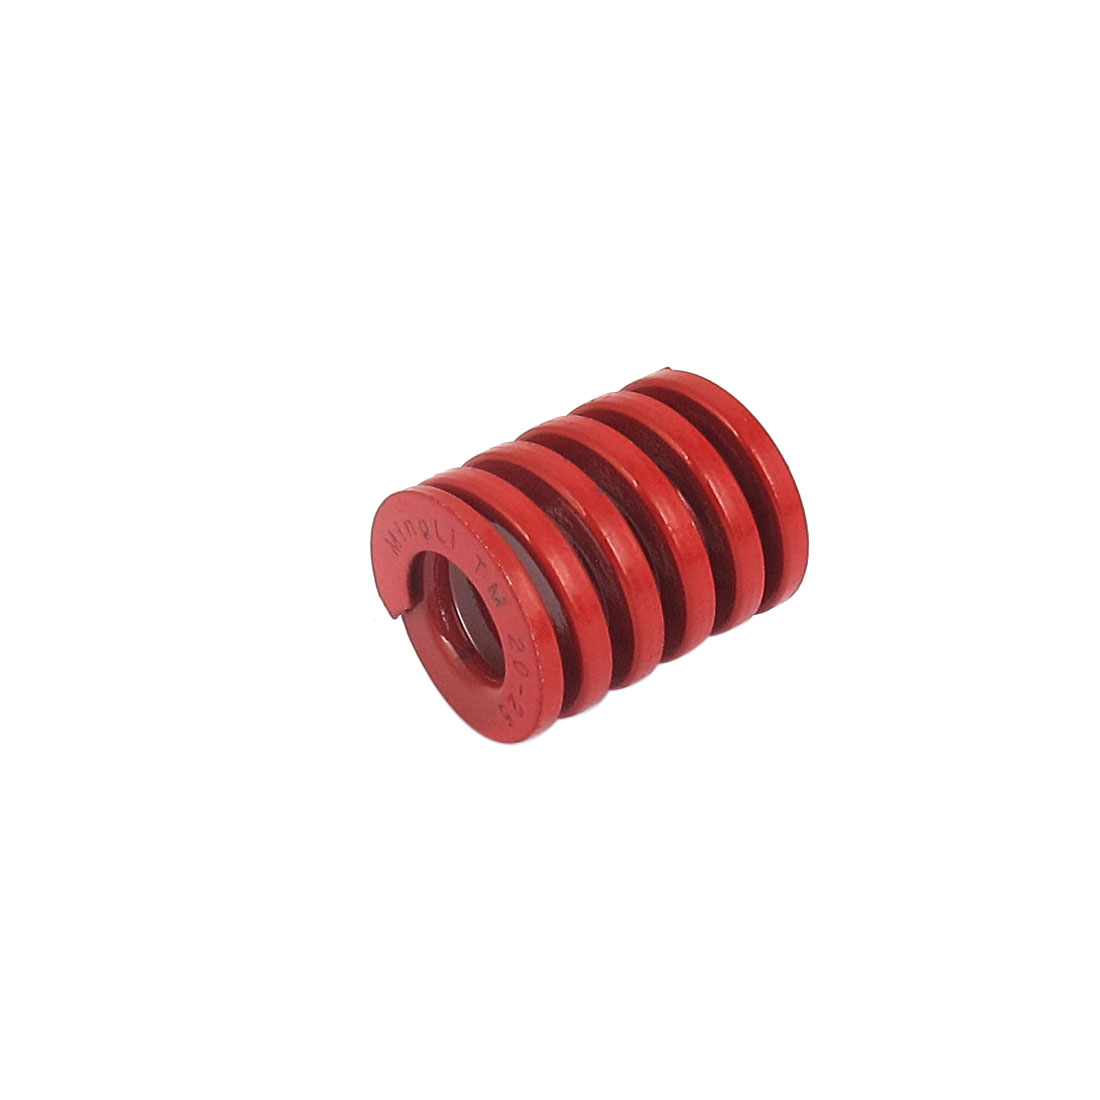 20mm OD 25mm Long Medium Load Spiral Stamping Compression Die Spring Red